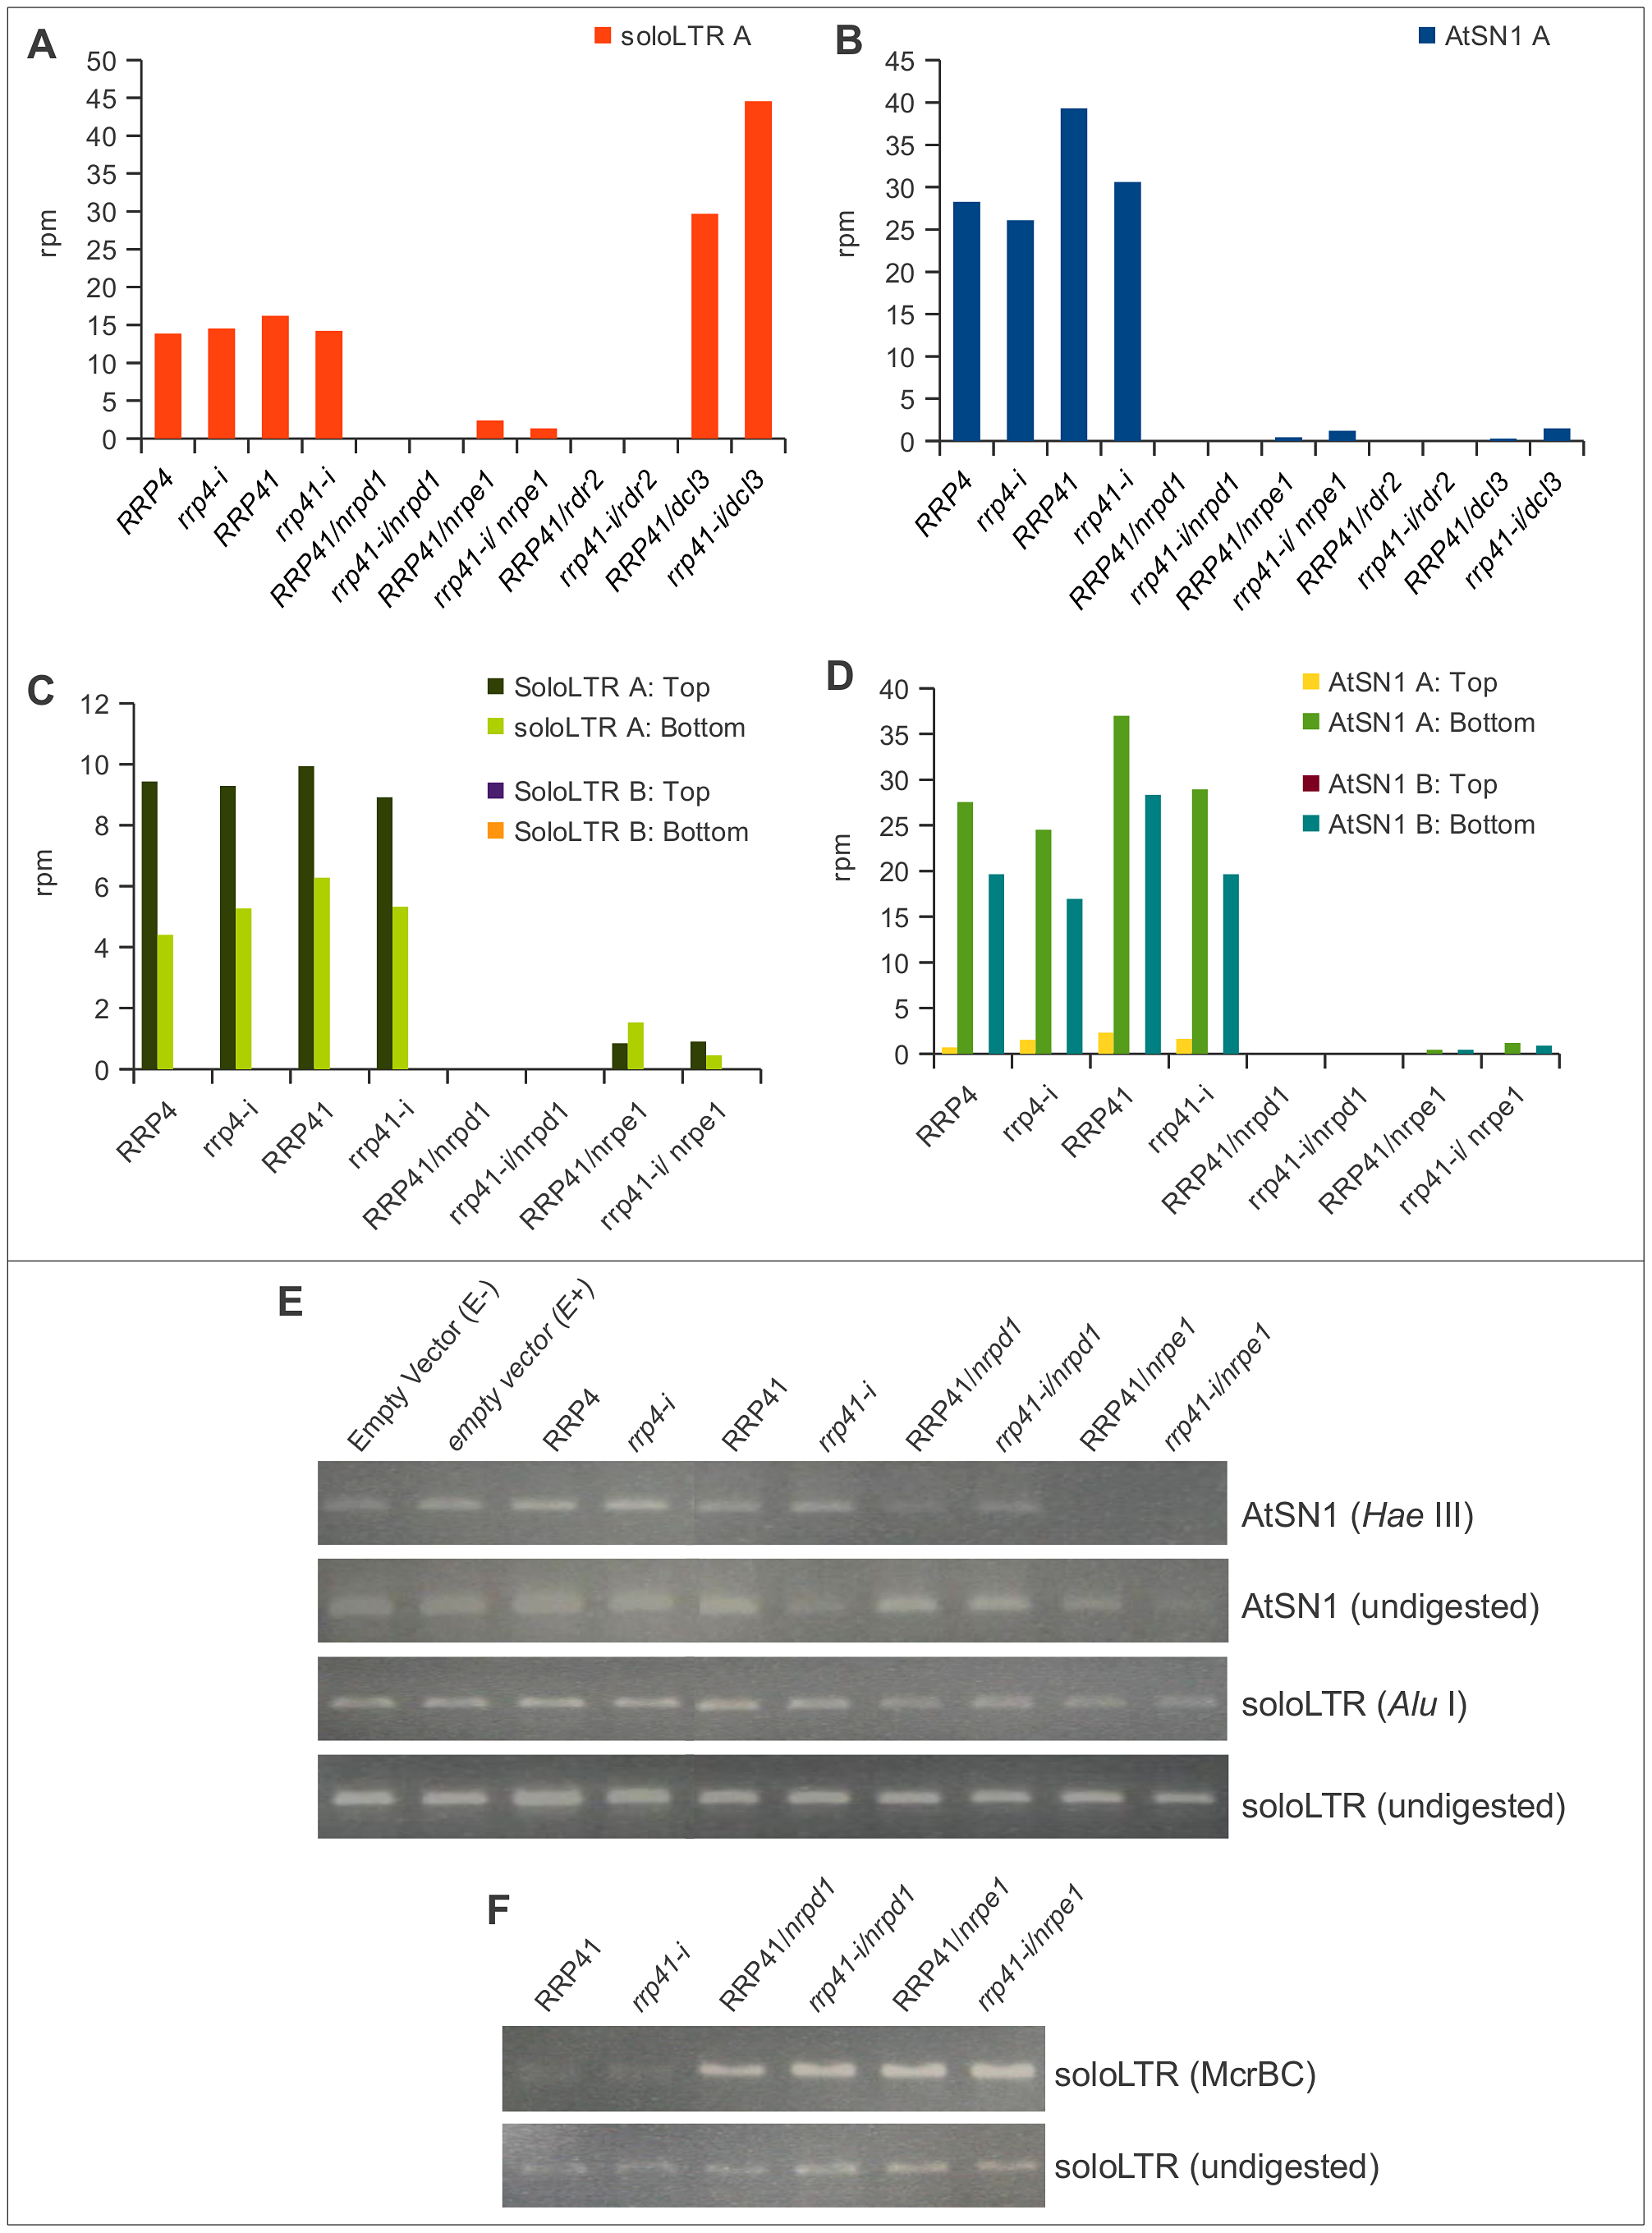 smRNA accumulation and DNA methylation in solo LTR and AtSN1 loci is unaltered upon exosome depletion.